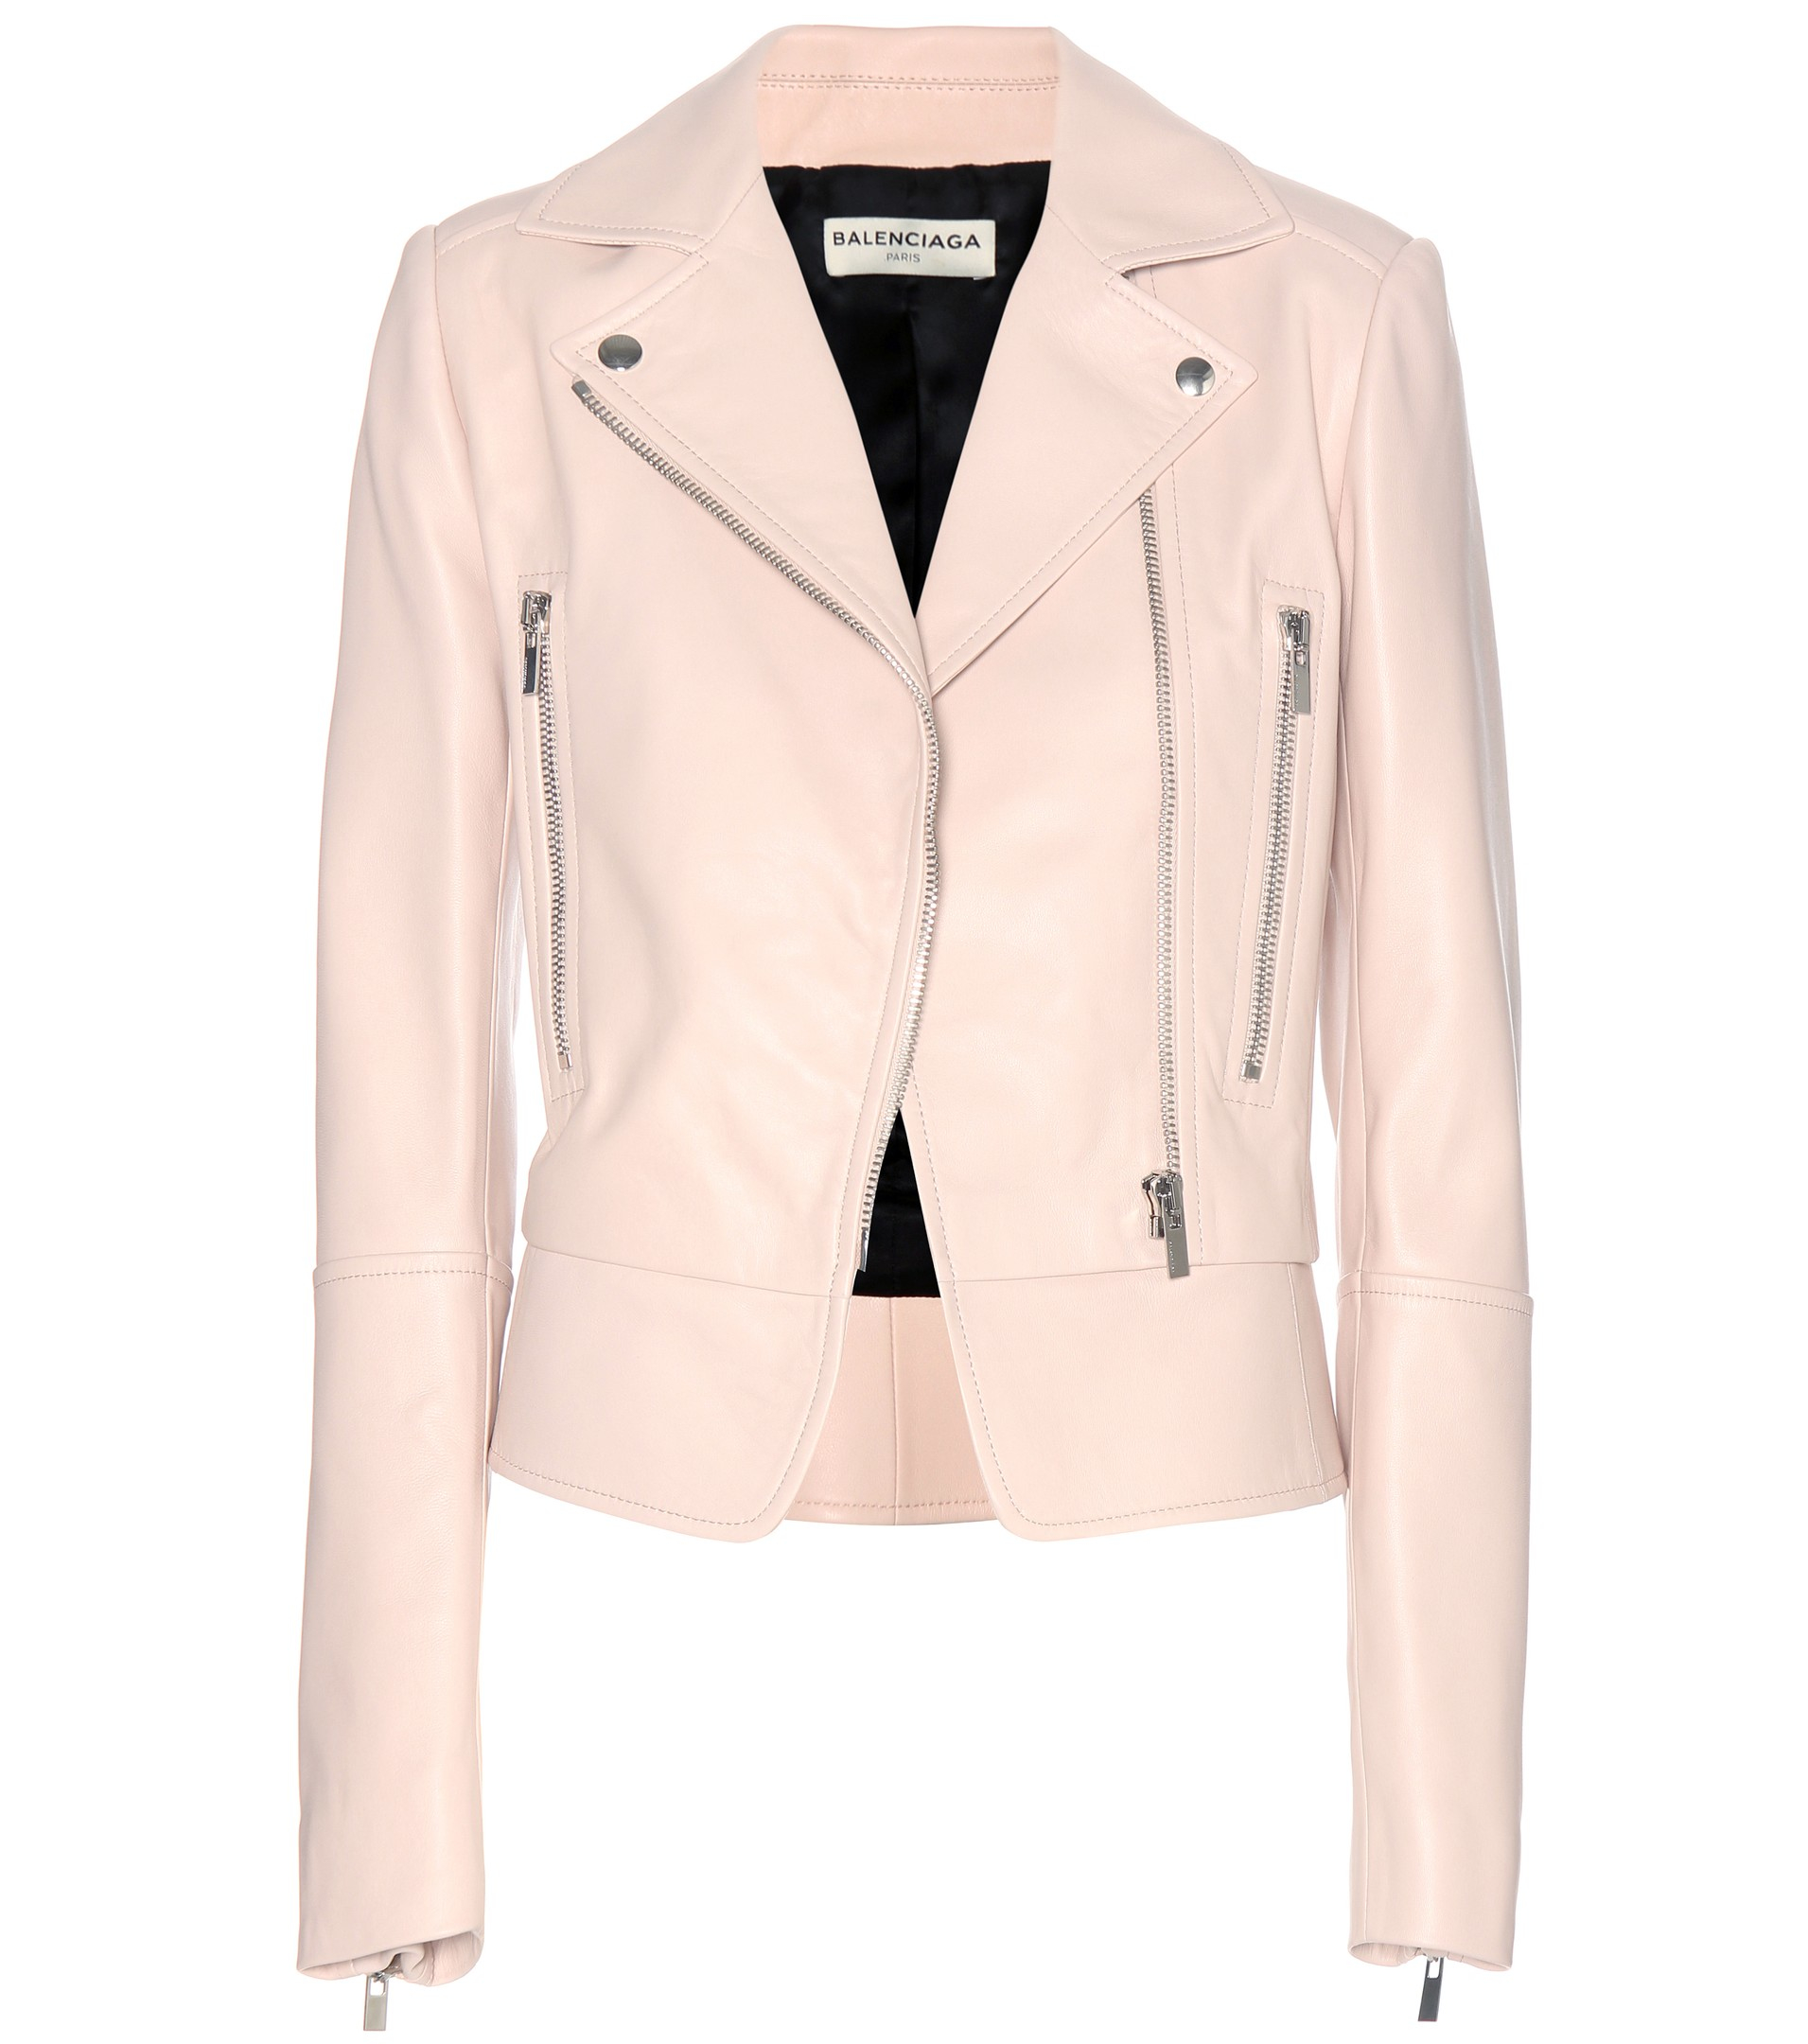 Lyst - Balenciaga Leather Biker Jacket in Natural ad7181c1ce